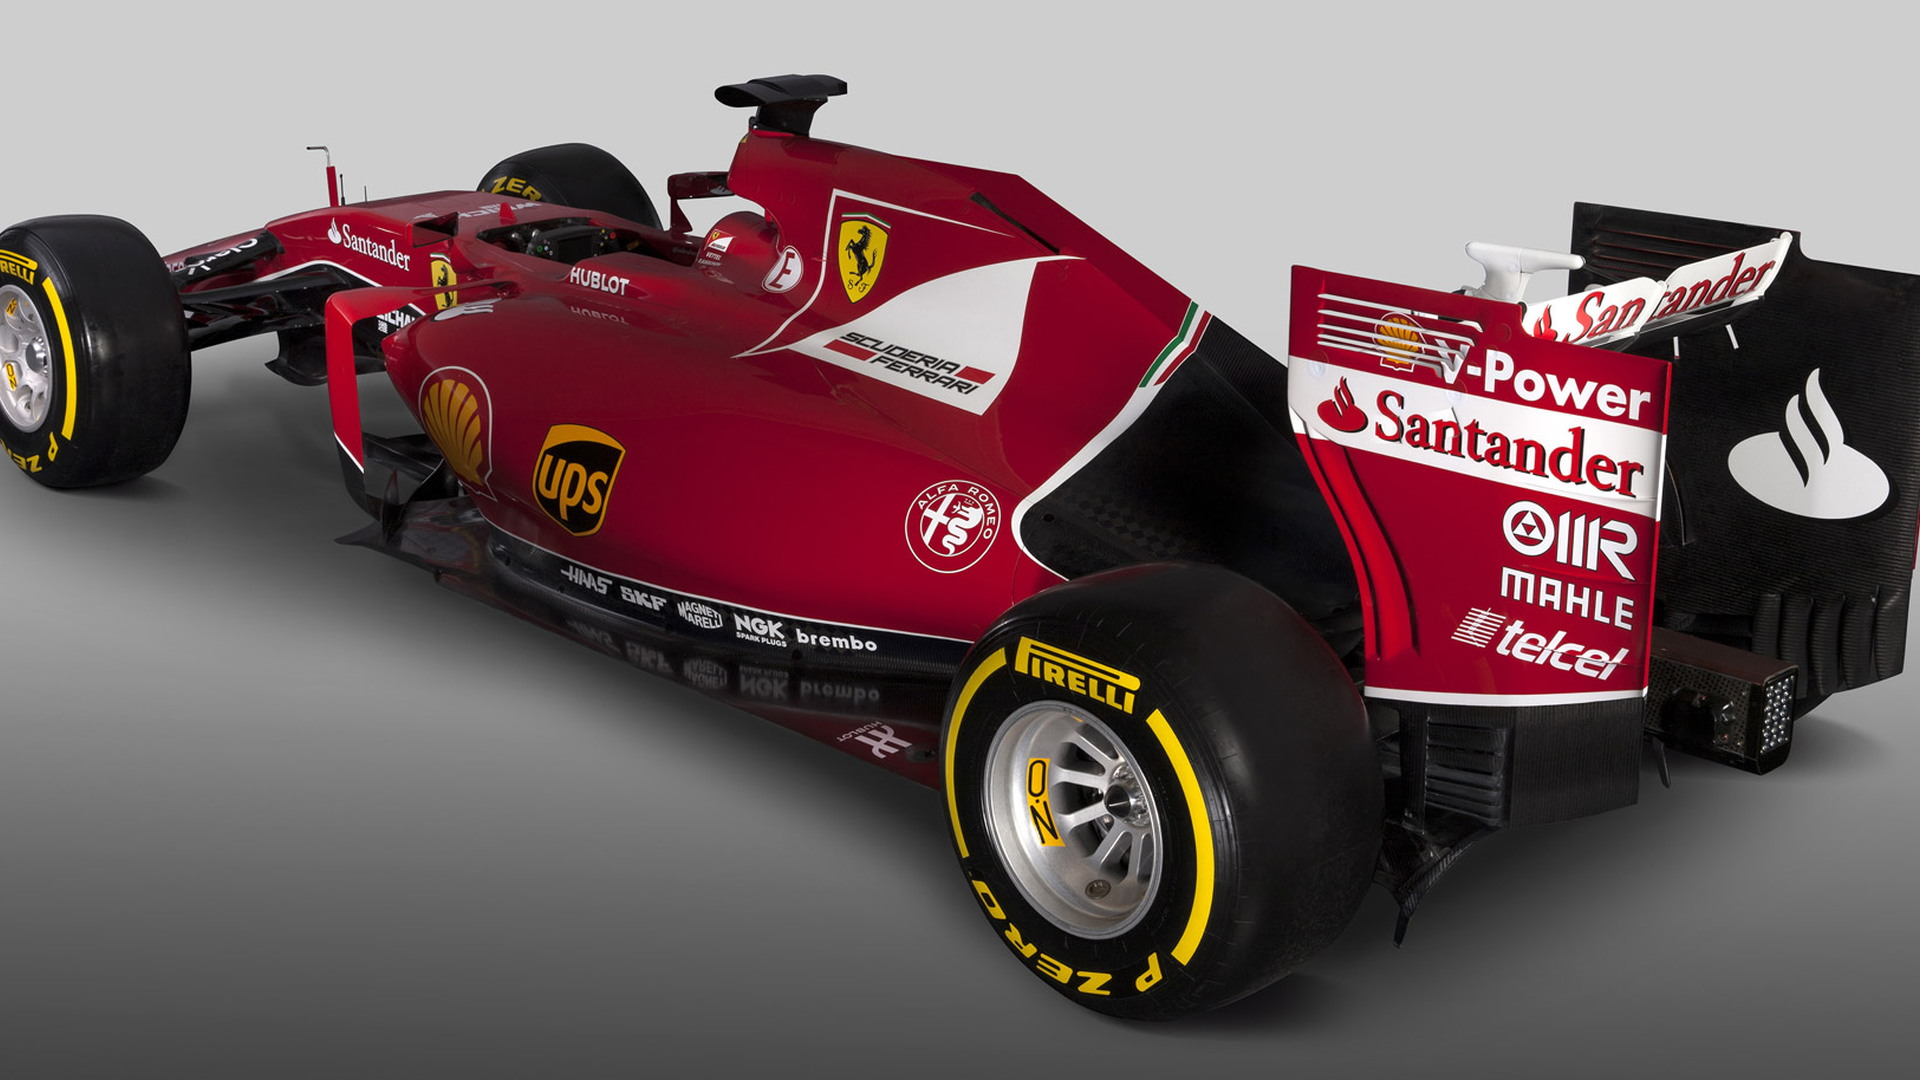 Ferrari SF15-T 2015 Formula One car